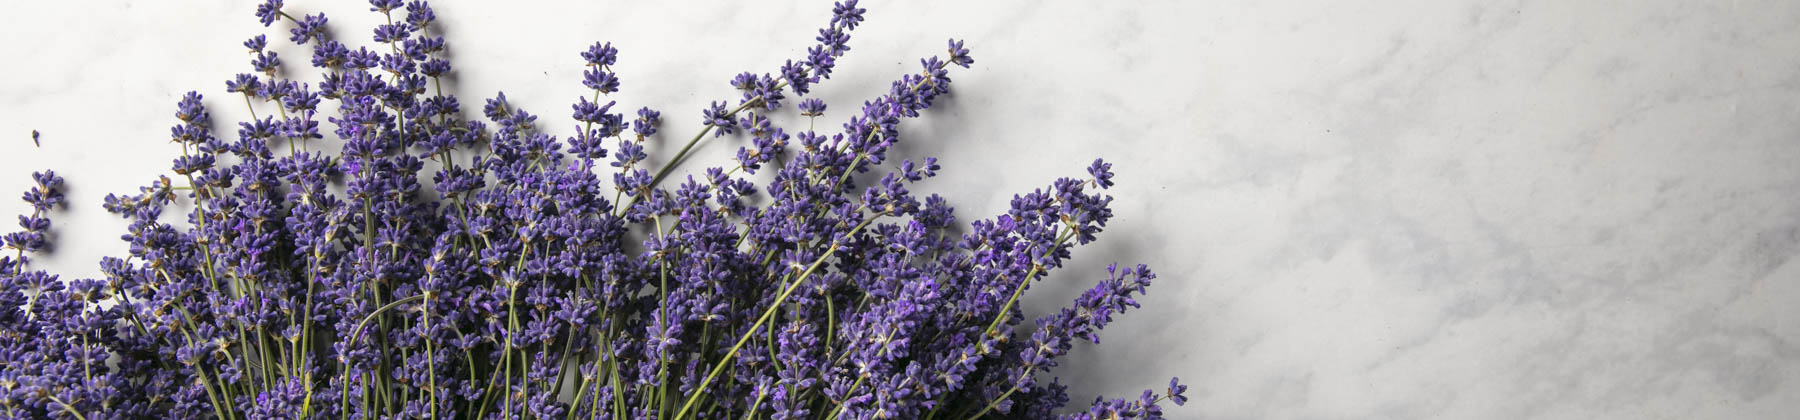 Fresh Lavender Bunches & Plants